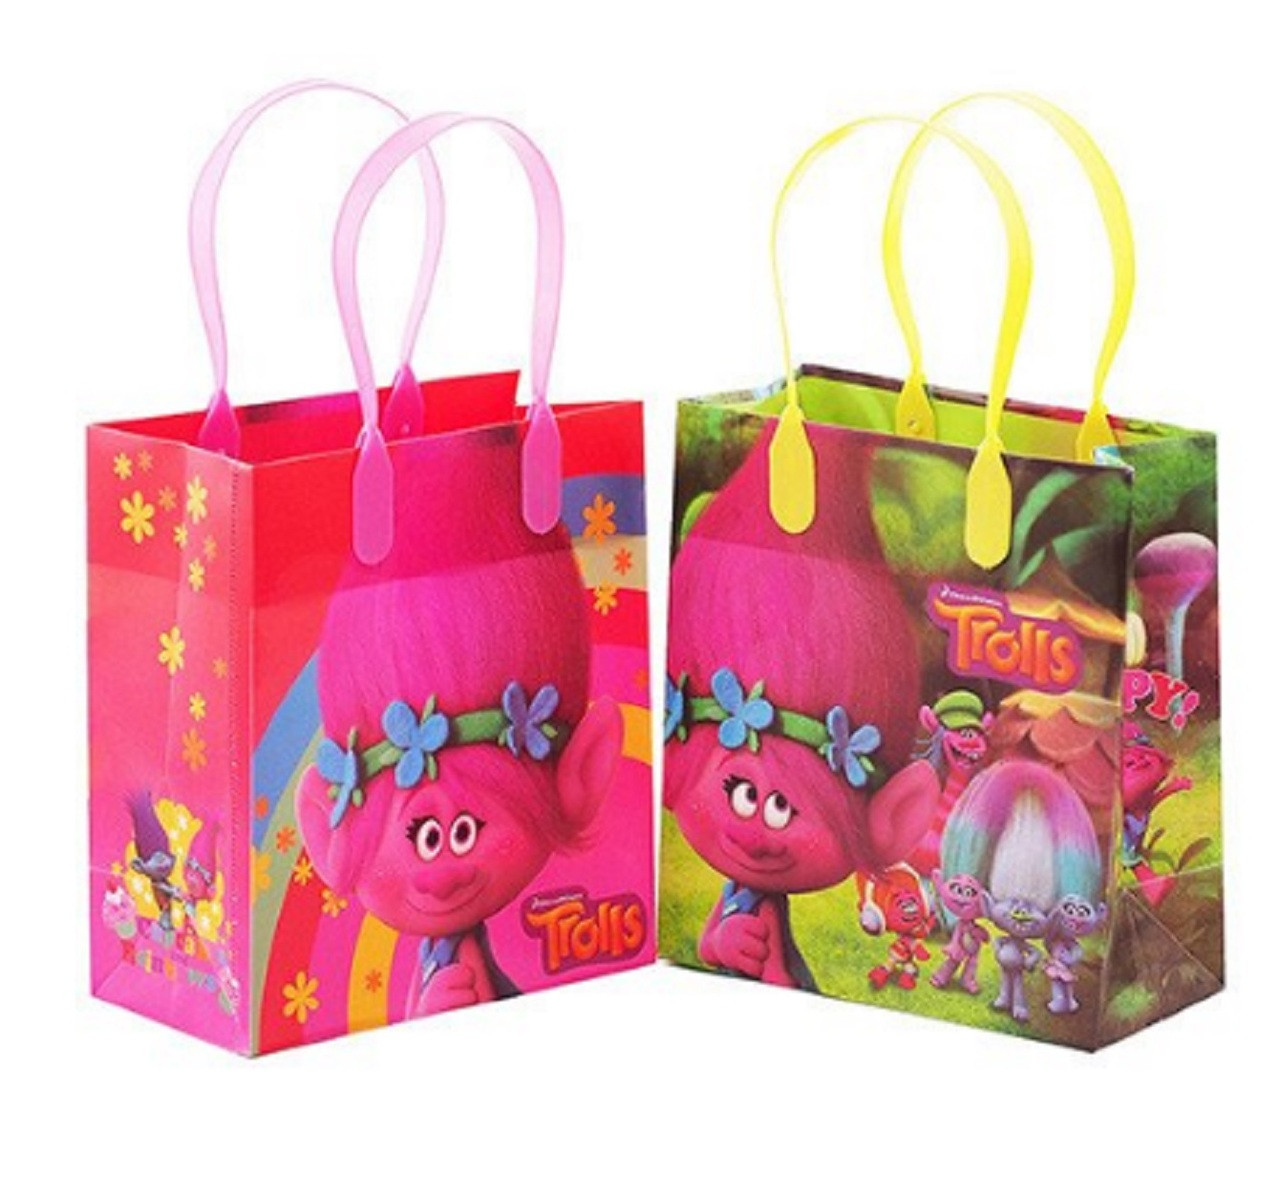 Trolls Pack of 12 Party Favor Reusable Small Plastic Gift Goodie Bags 6in